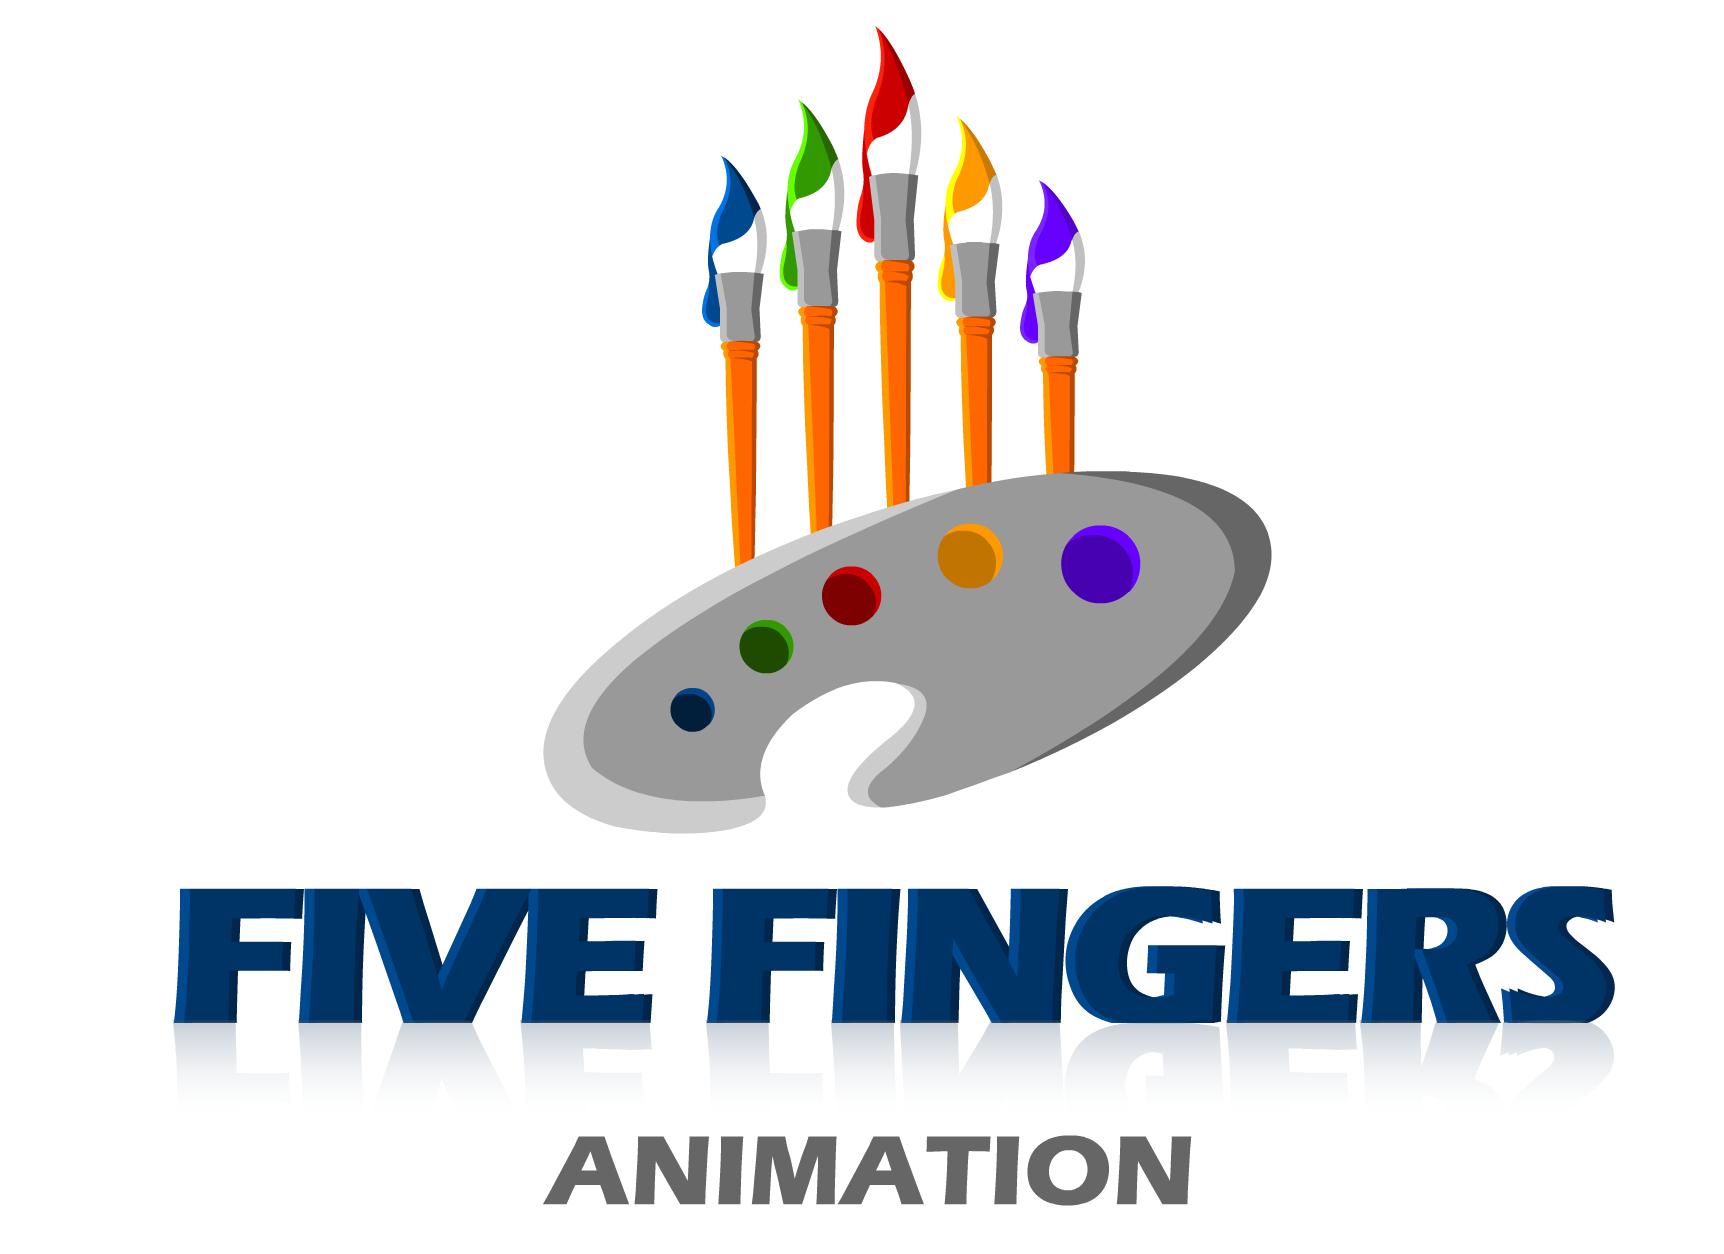 Profile image of fivefingersanim